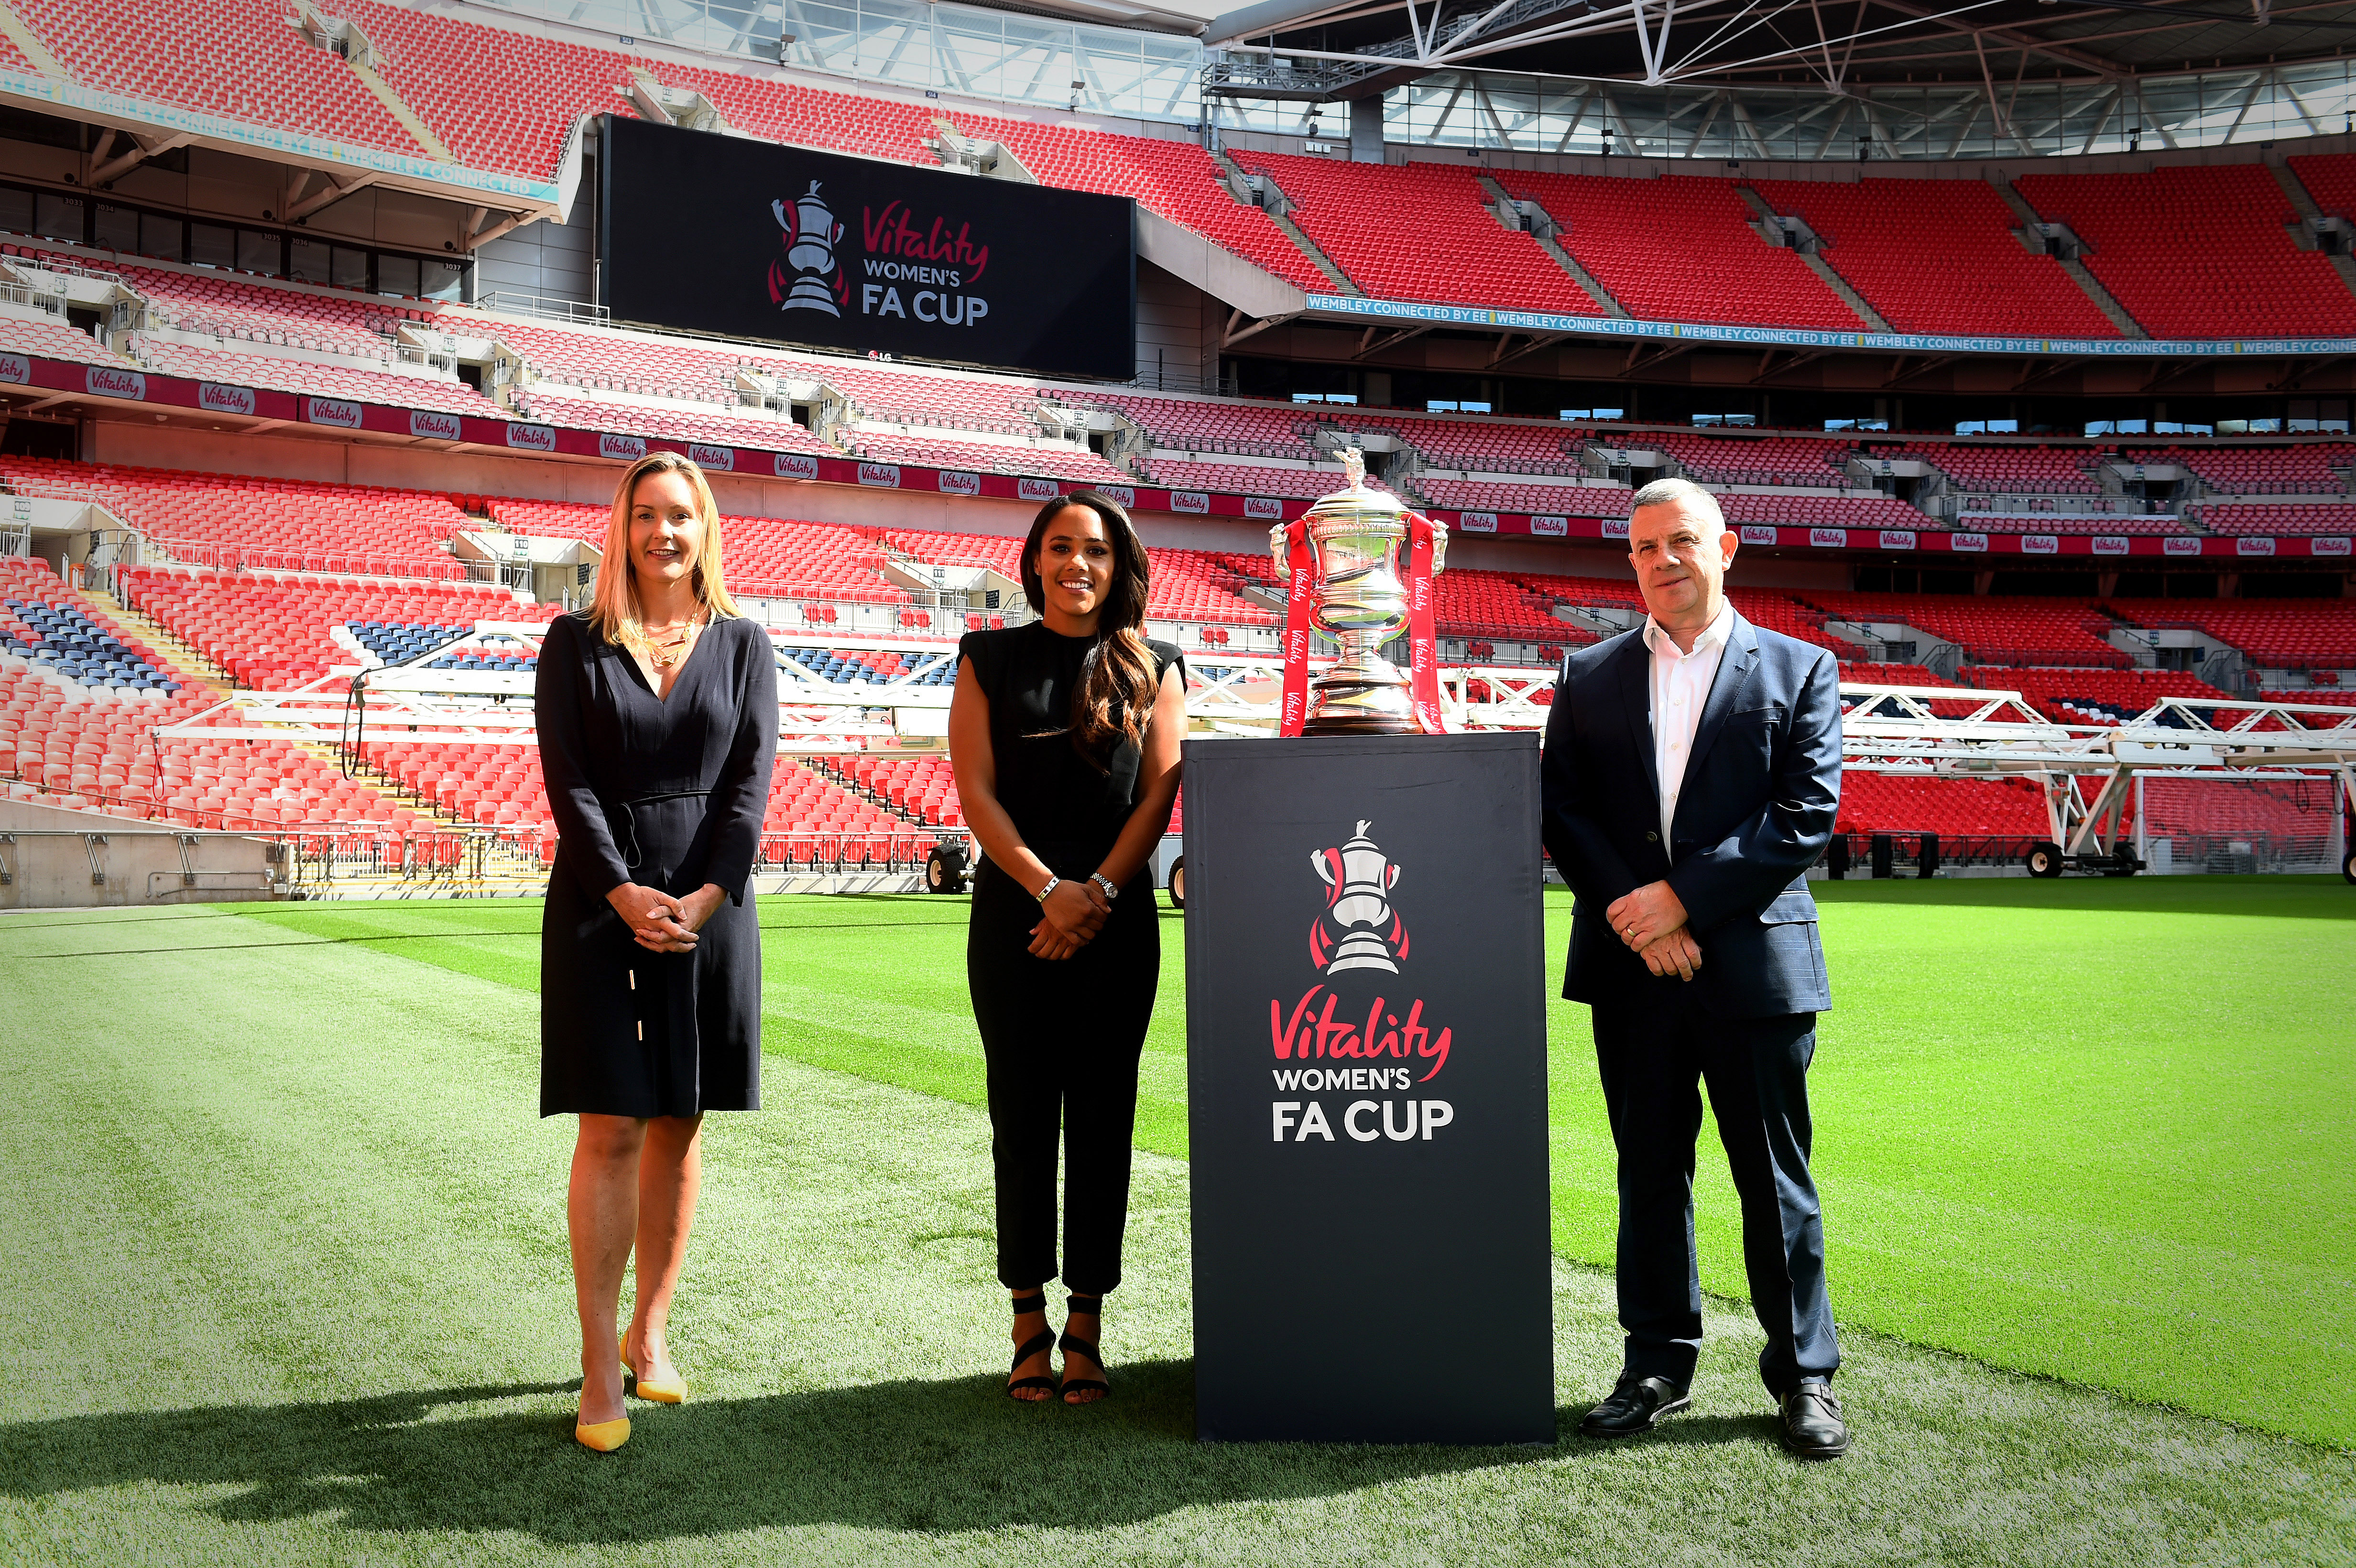 Alex Scott, centre, is an ambassador for Vitality, which has struck a deal to sponsor the Women's FA Cup. The former England defender is pictured alongside Vitality CEO Neville Koopowitz, right, and the FA marketing director Kathryn Swarbrick